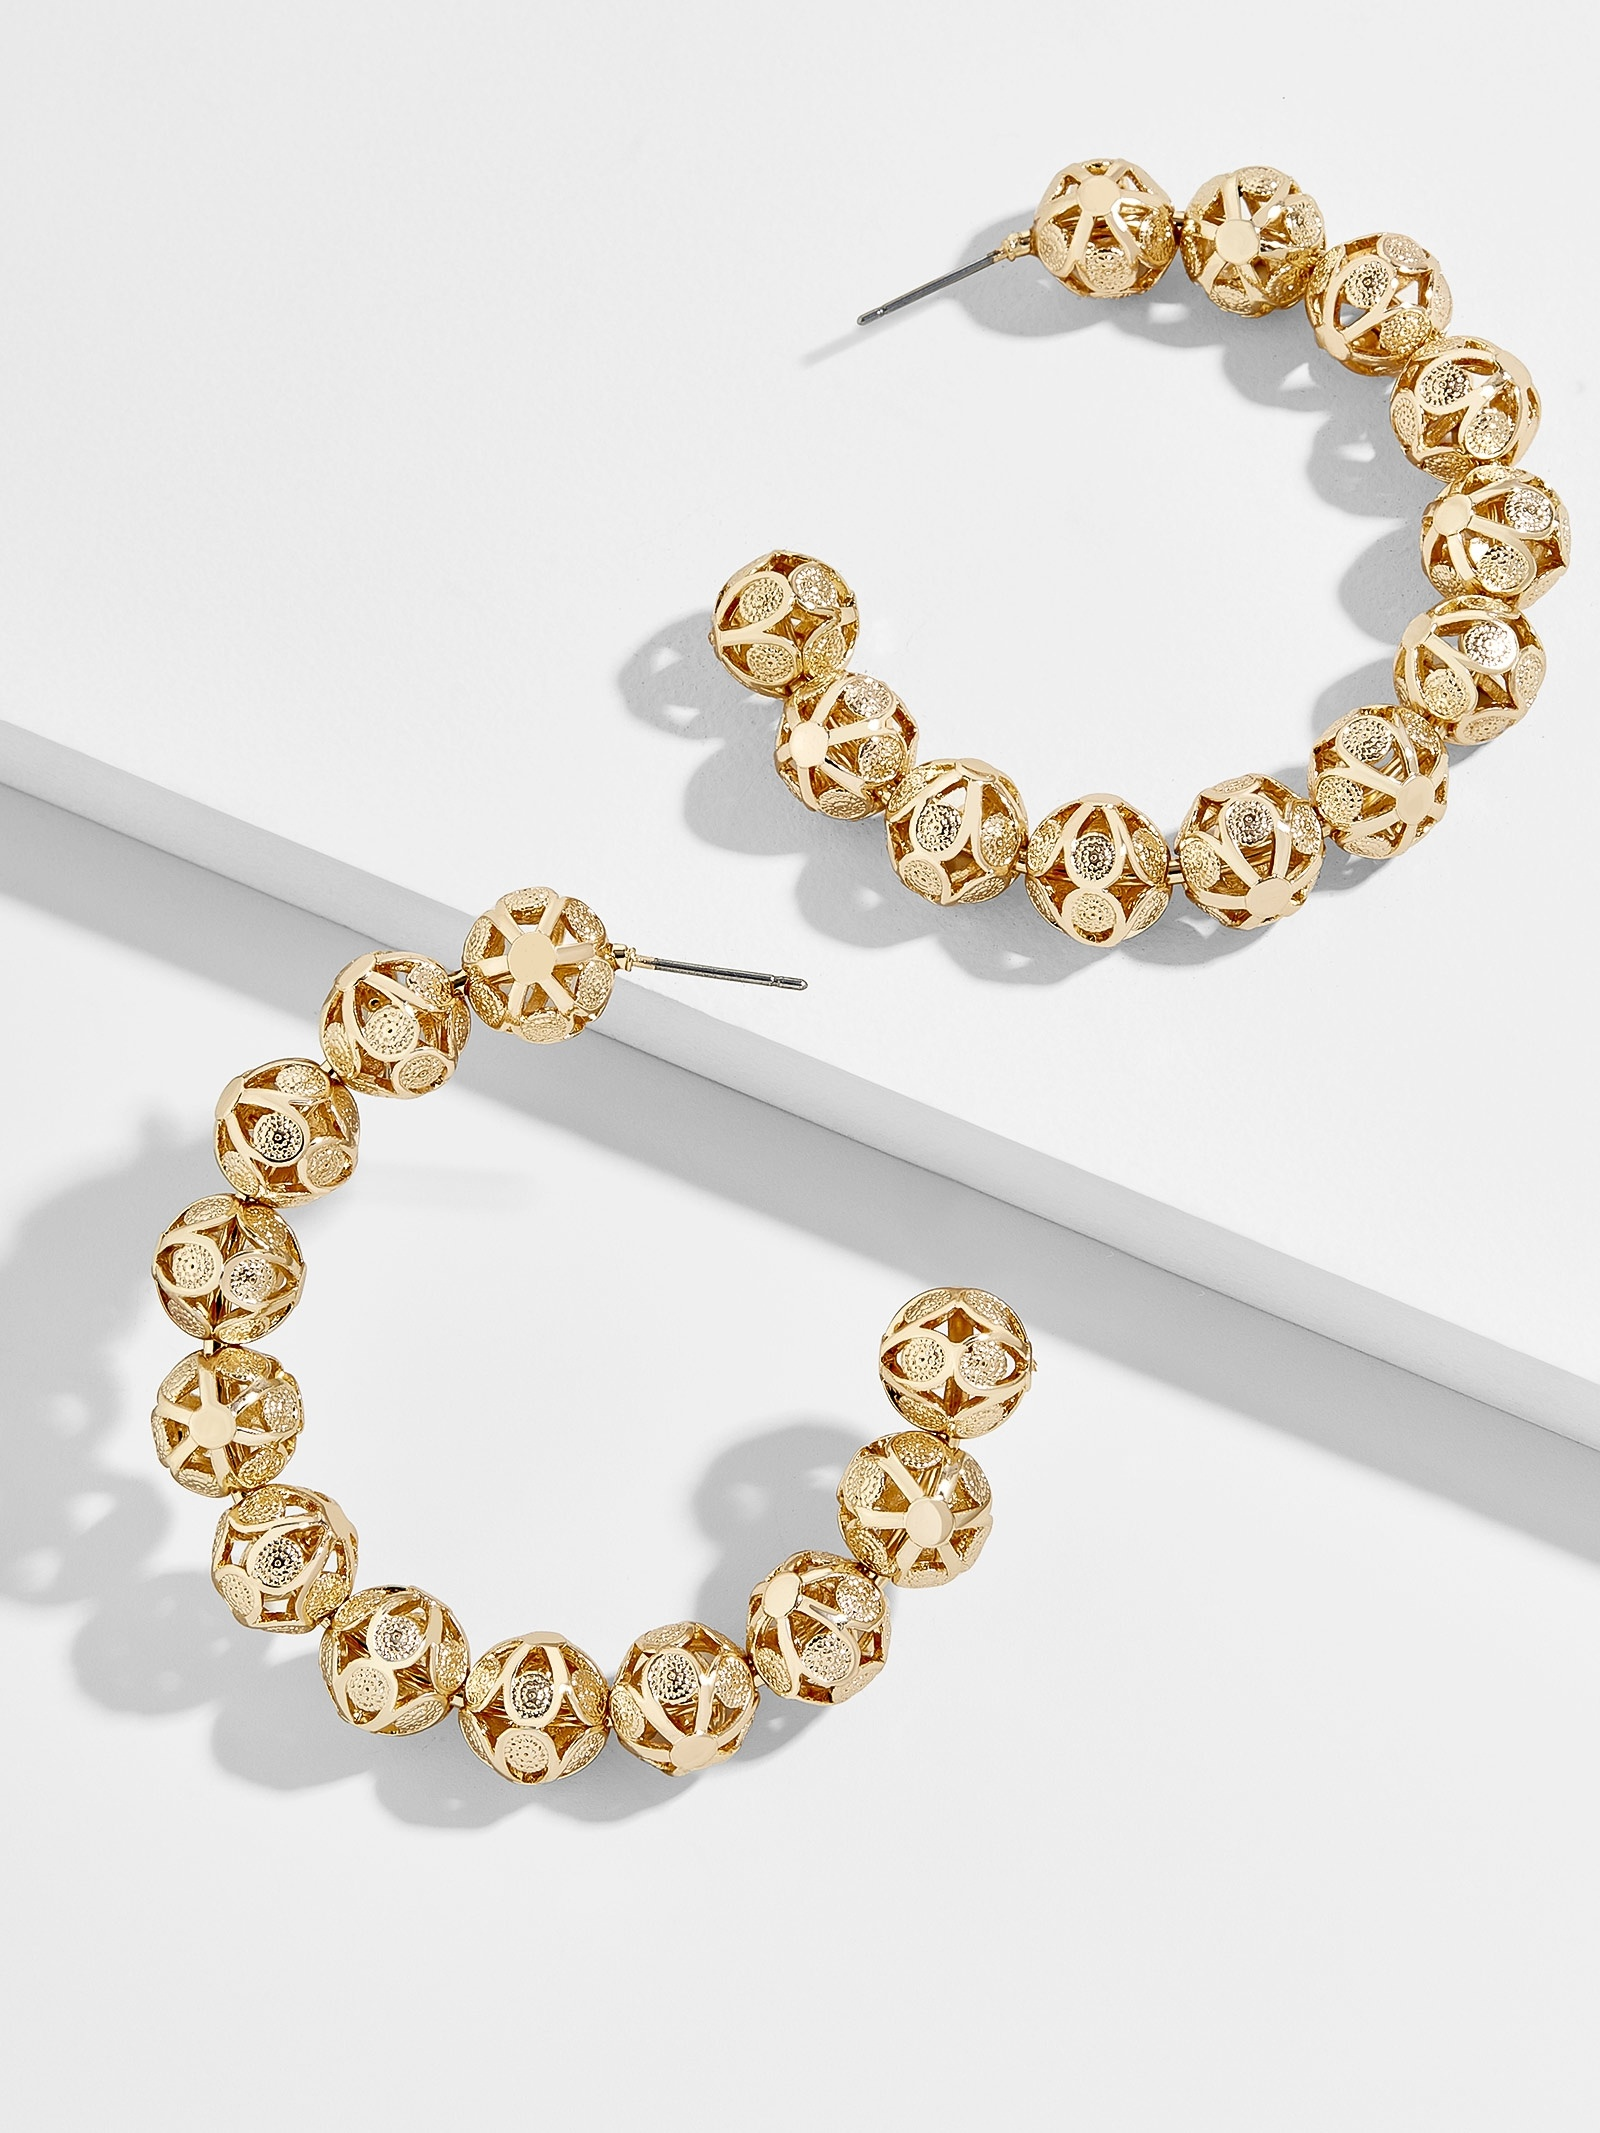 Amora Hoop Earrings by Baublebar